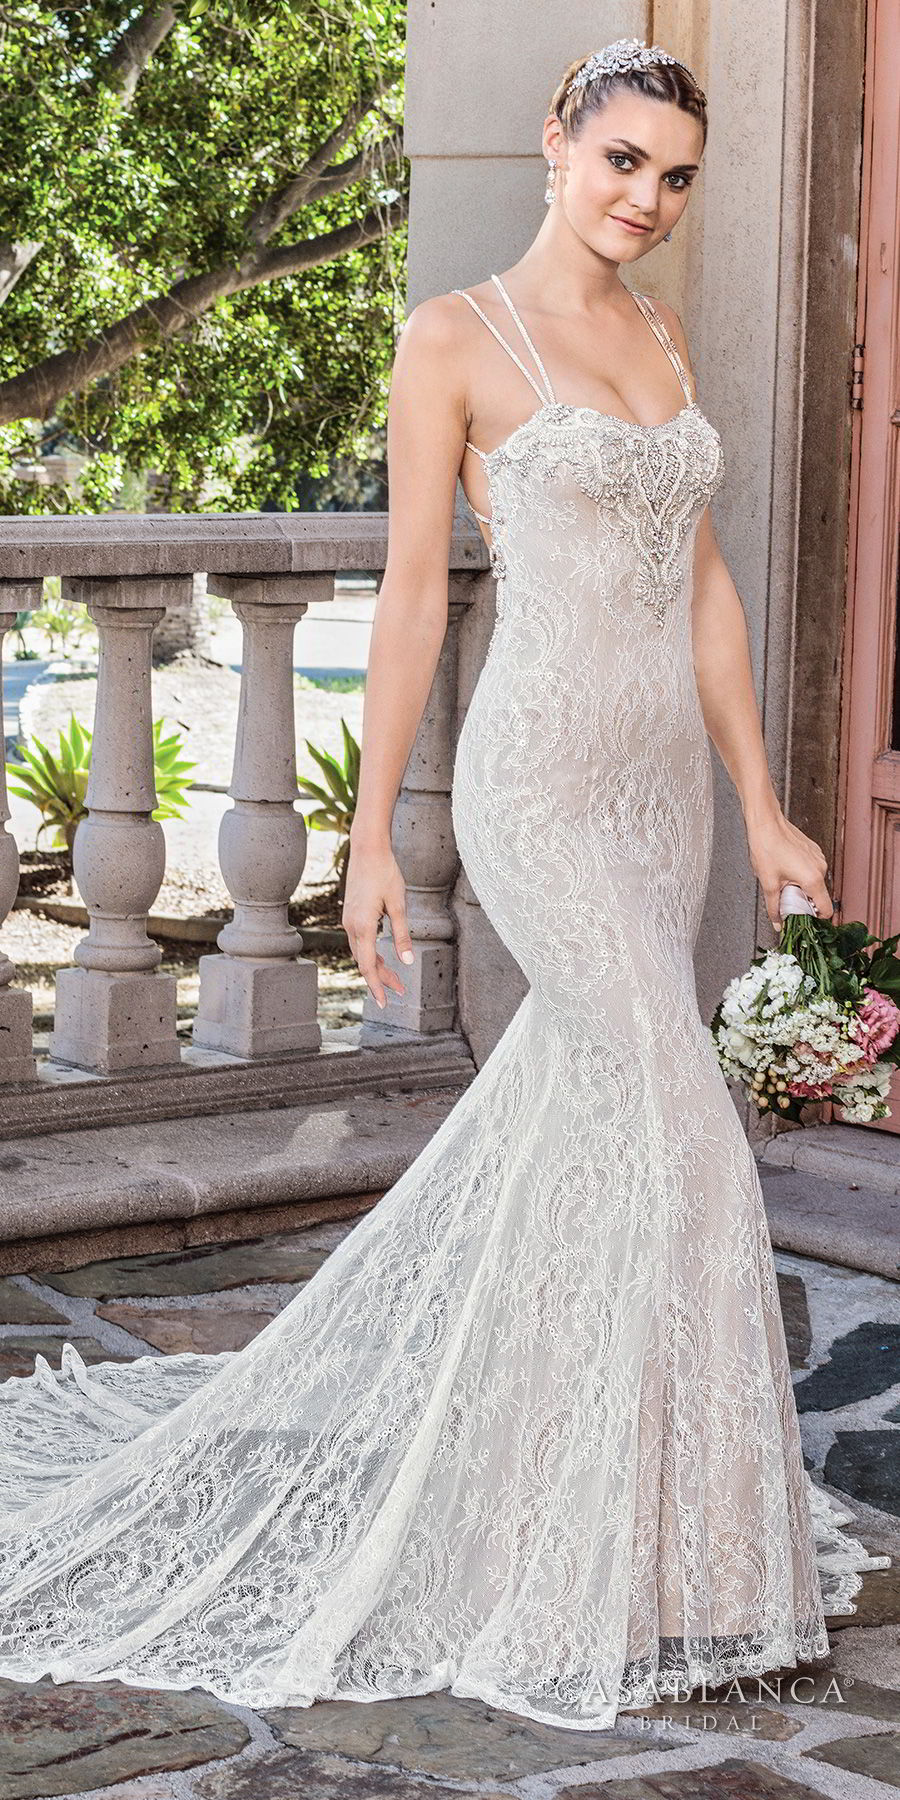 casablanca spring 2018 thin double strap sweetheart neckline full embellishment elegant fit and flare wedding dress low open back chapel train (adri) mv